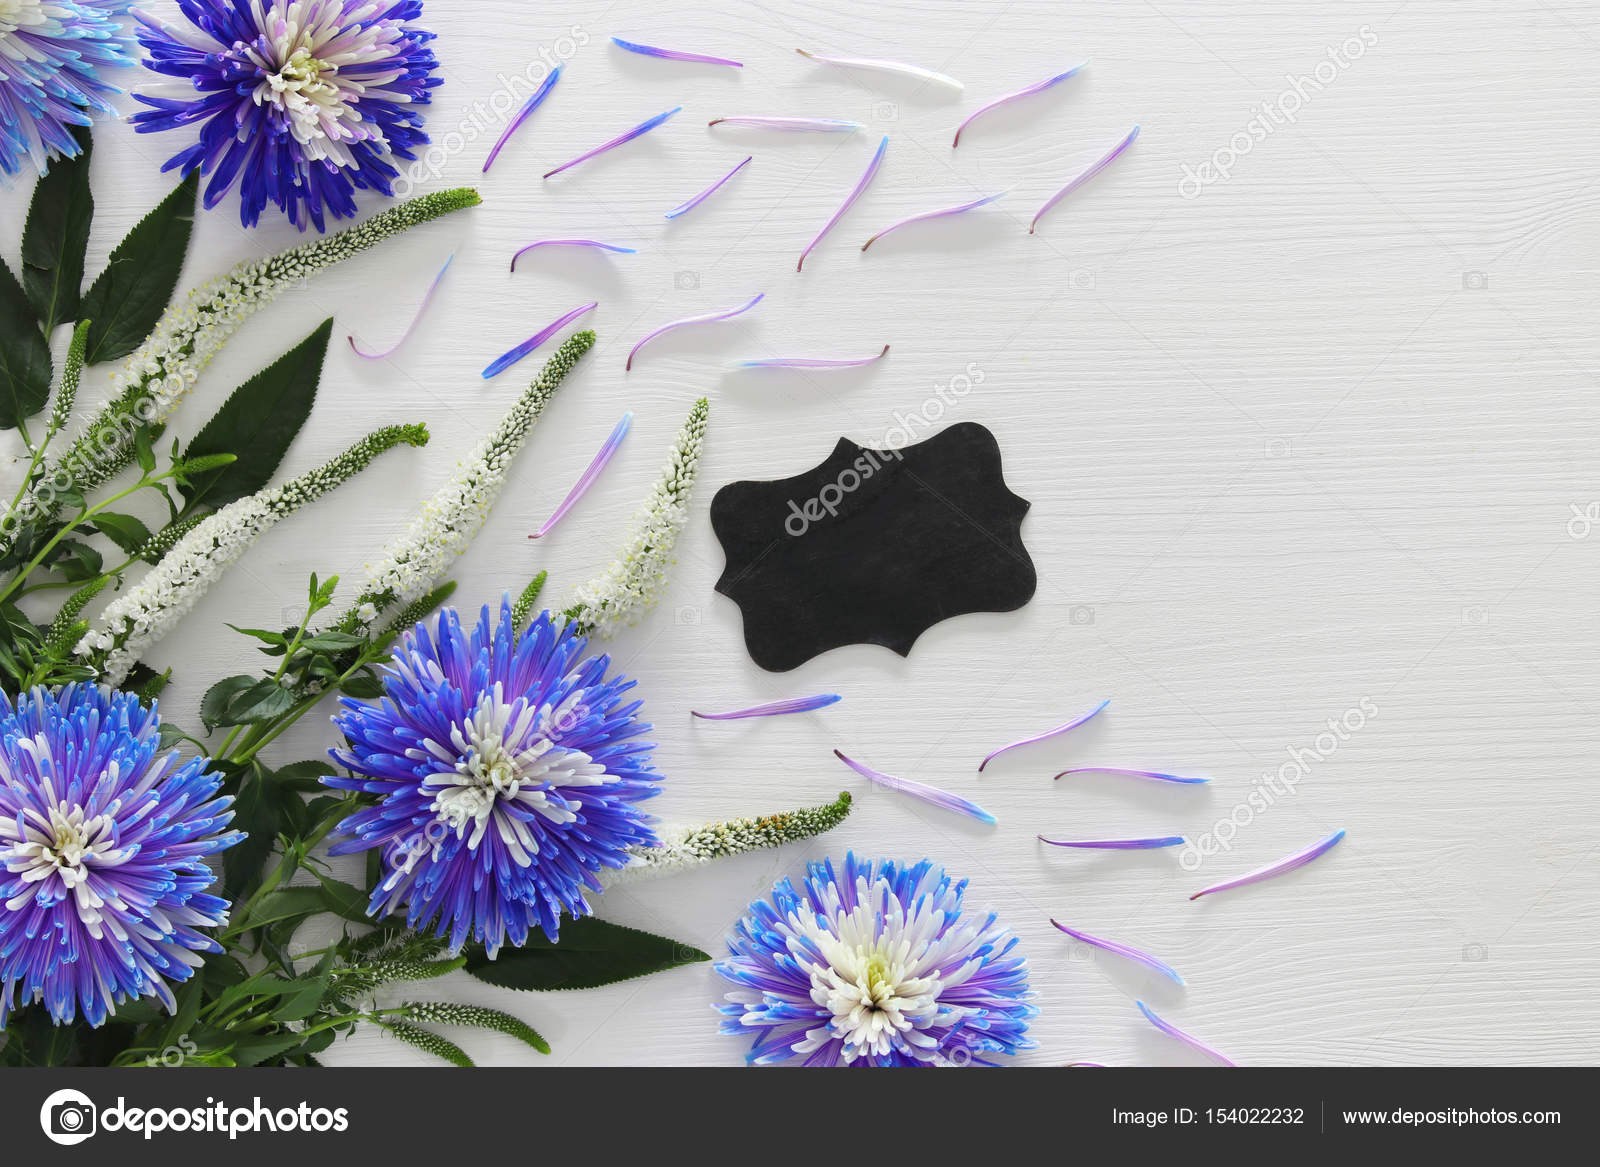 Blue and white flowers arrangement and blackboard stock photo blue and white flowers arrangement and blackboard stock photo izmirmasajfo